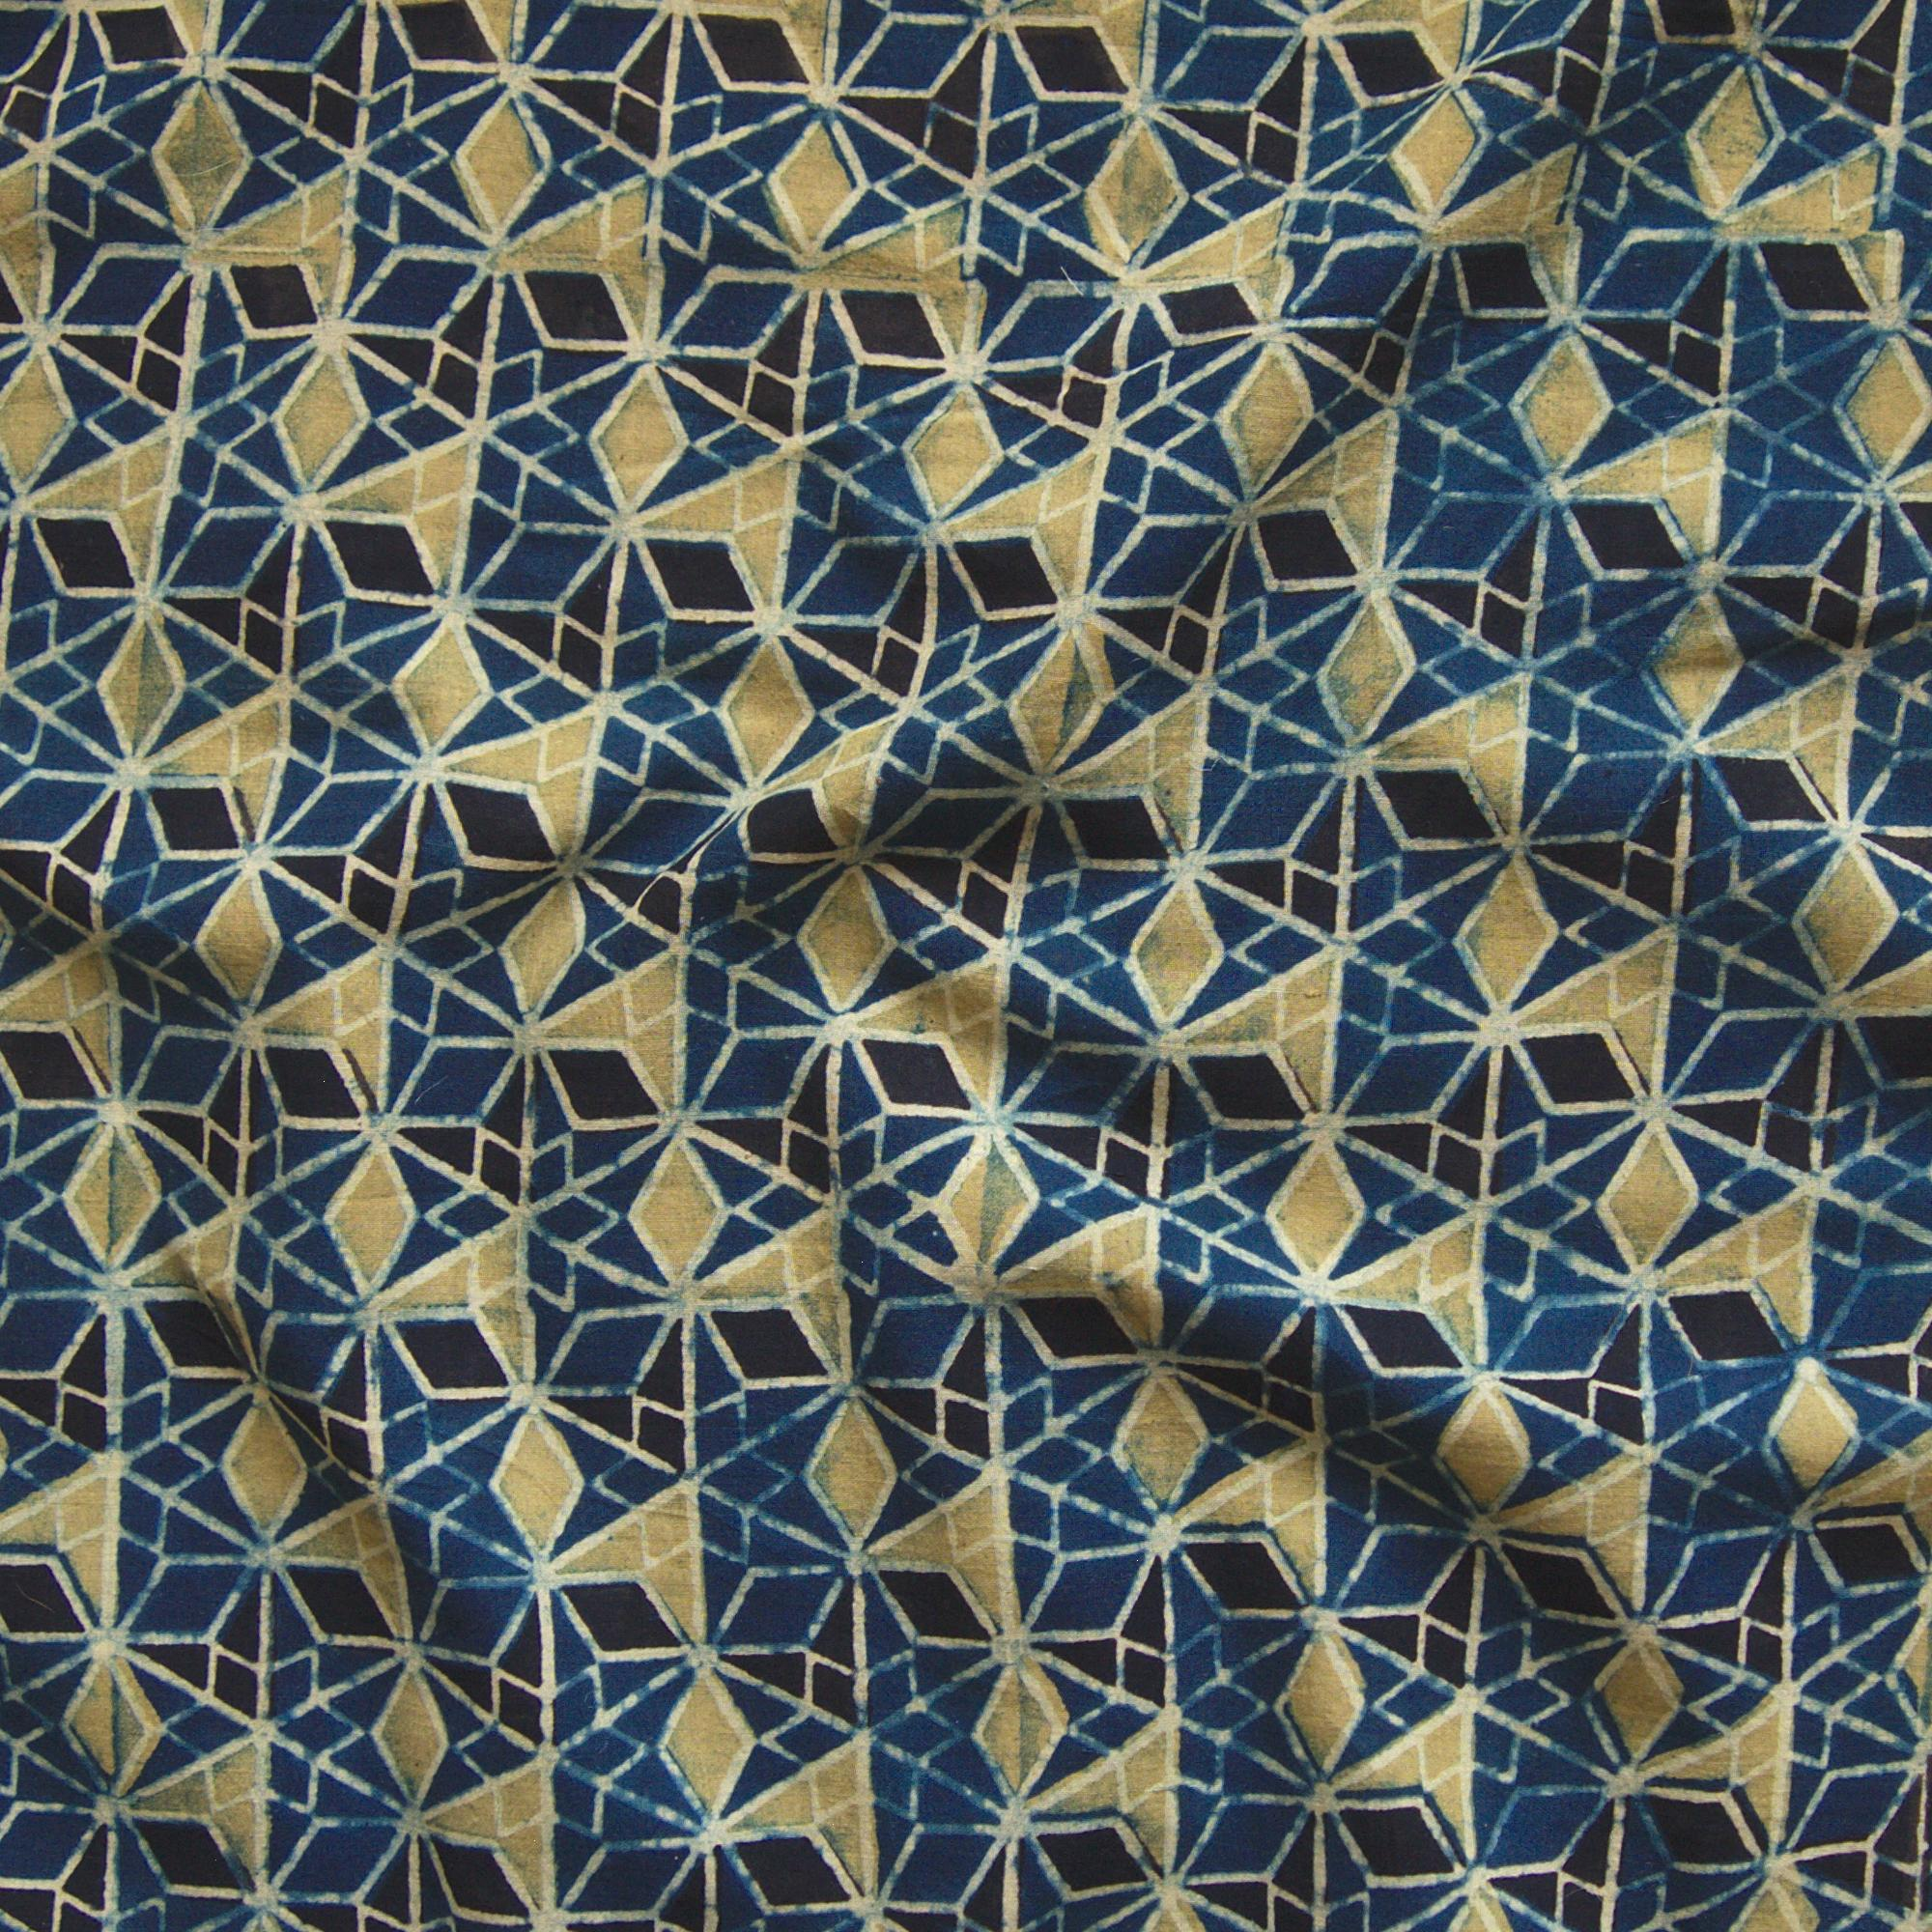 Block Printed Fabric, 100% Cotton, Ajrak Design: Blue Base, Black, Lime Wing. Contrast